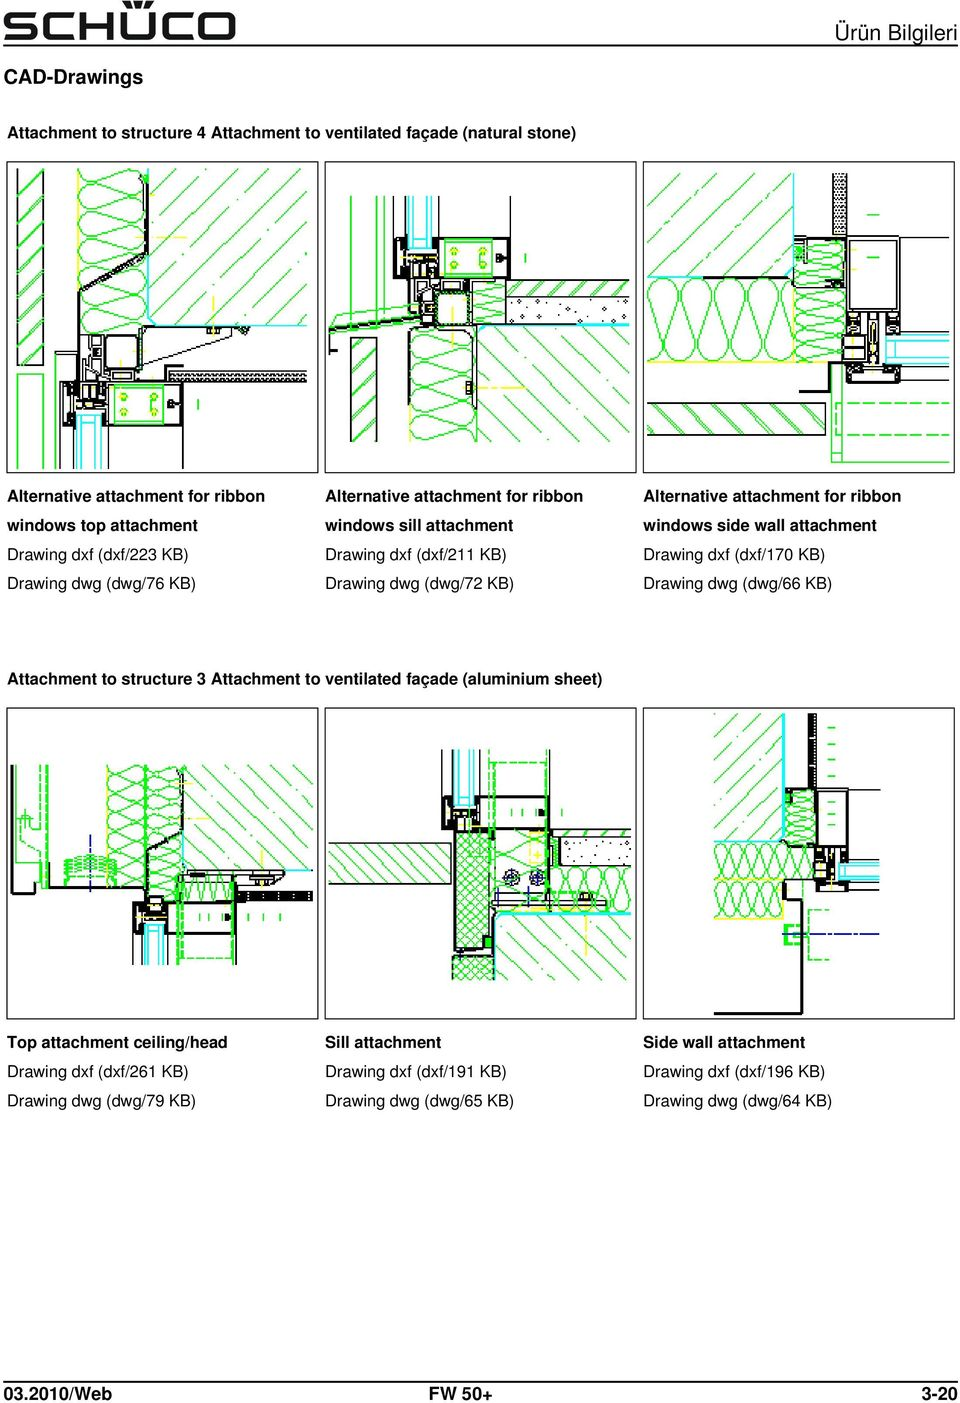 attachment Drawing dxf (dxf/170 KB) Drawing dwg (dwg/66 KB) Attachment to structure 3 Attachment to ventilated façade (aluminium sheet) Top attachment ceiling/head Drawing dxf